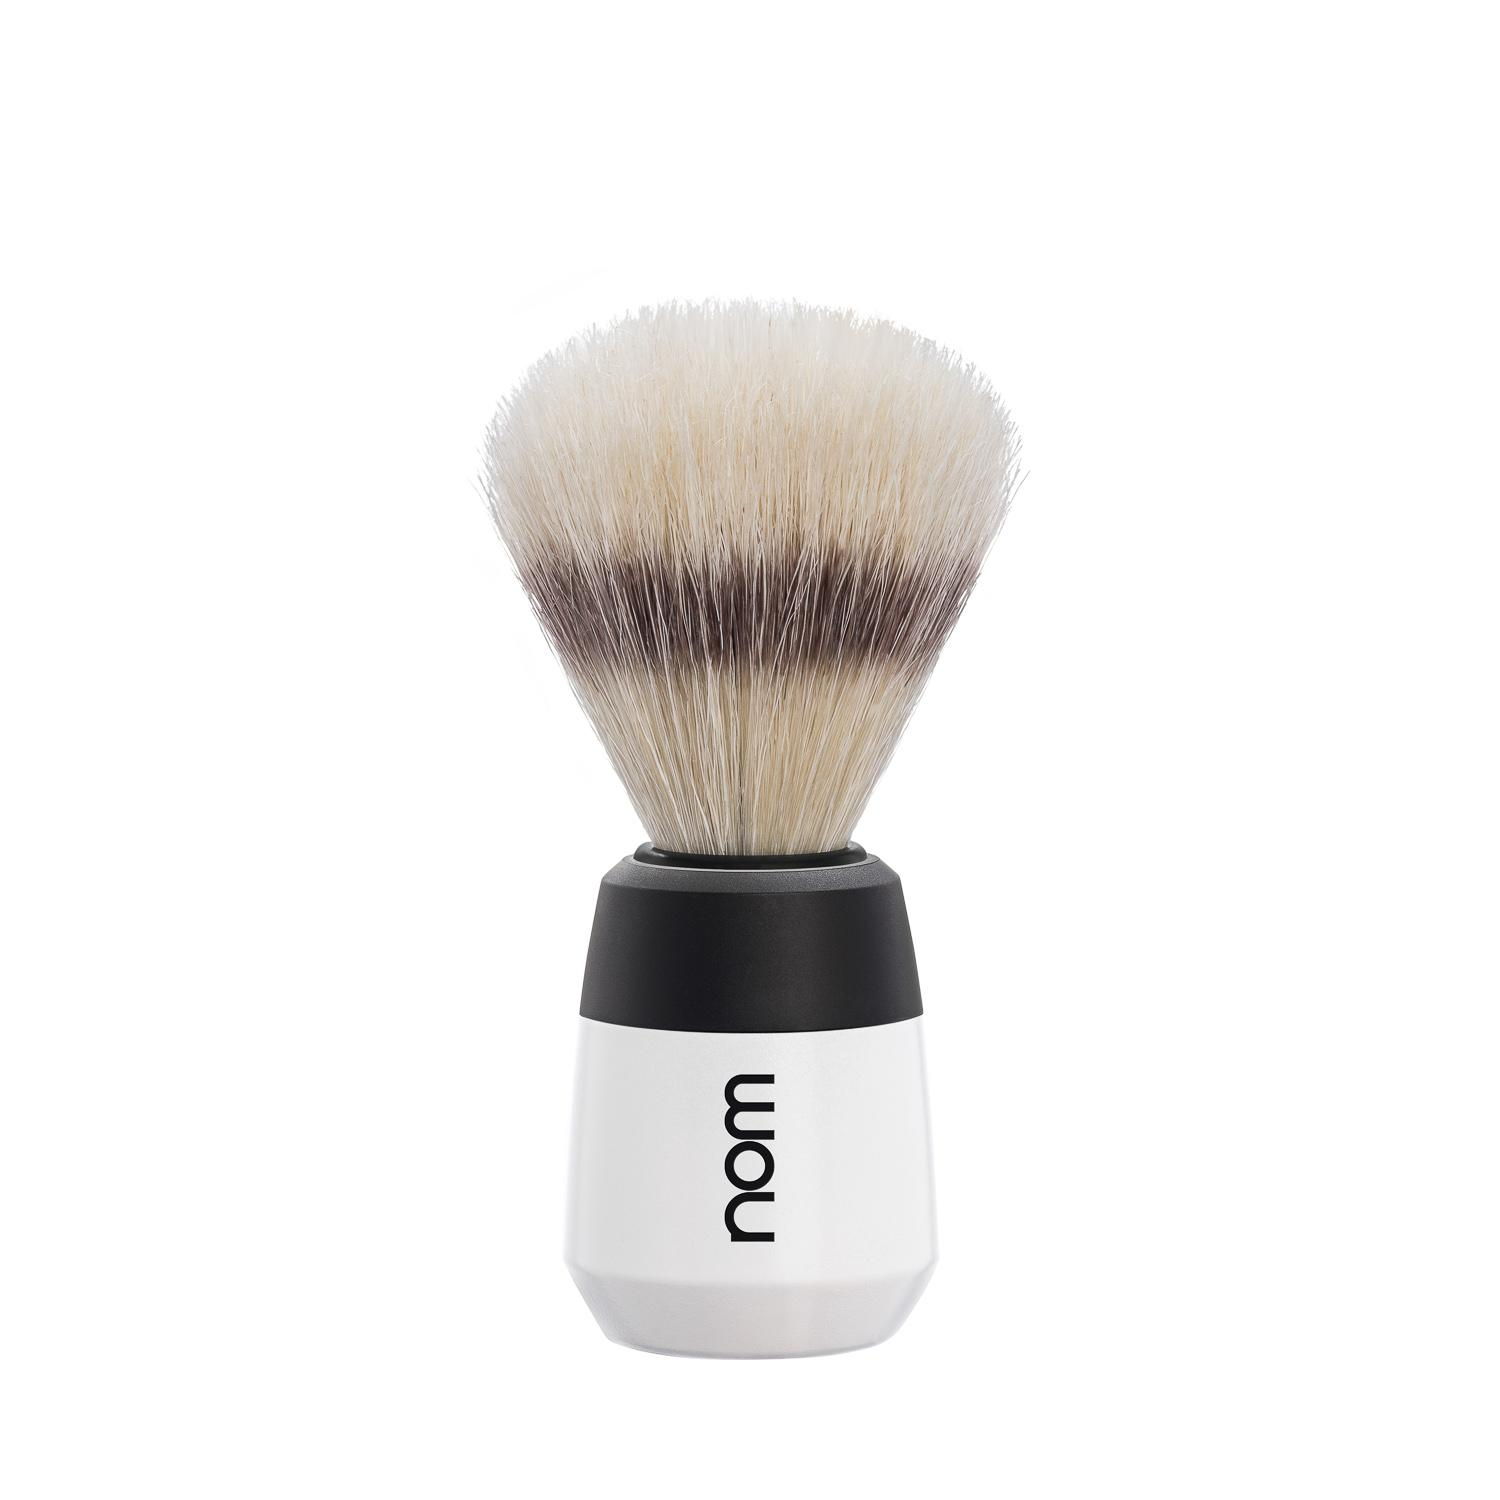 nom MAX, White, Natural Bristle Shaving Brush